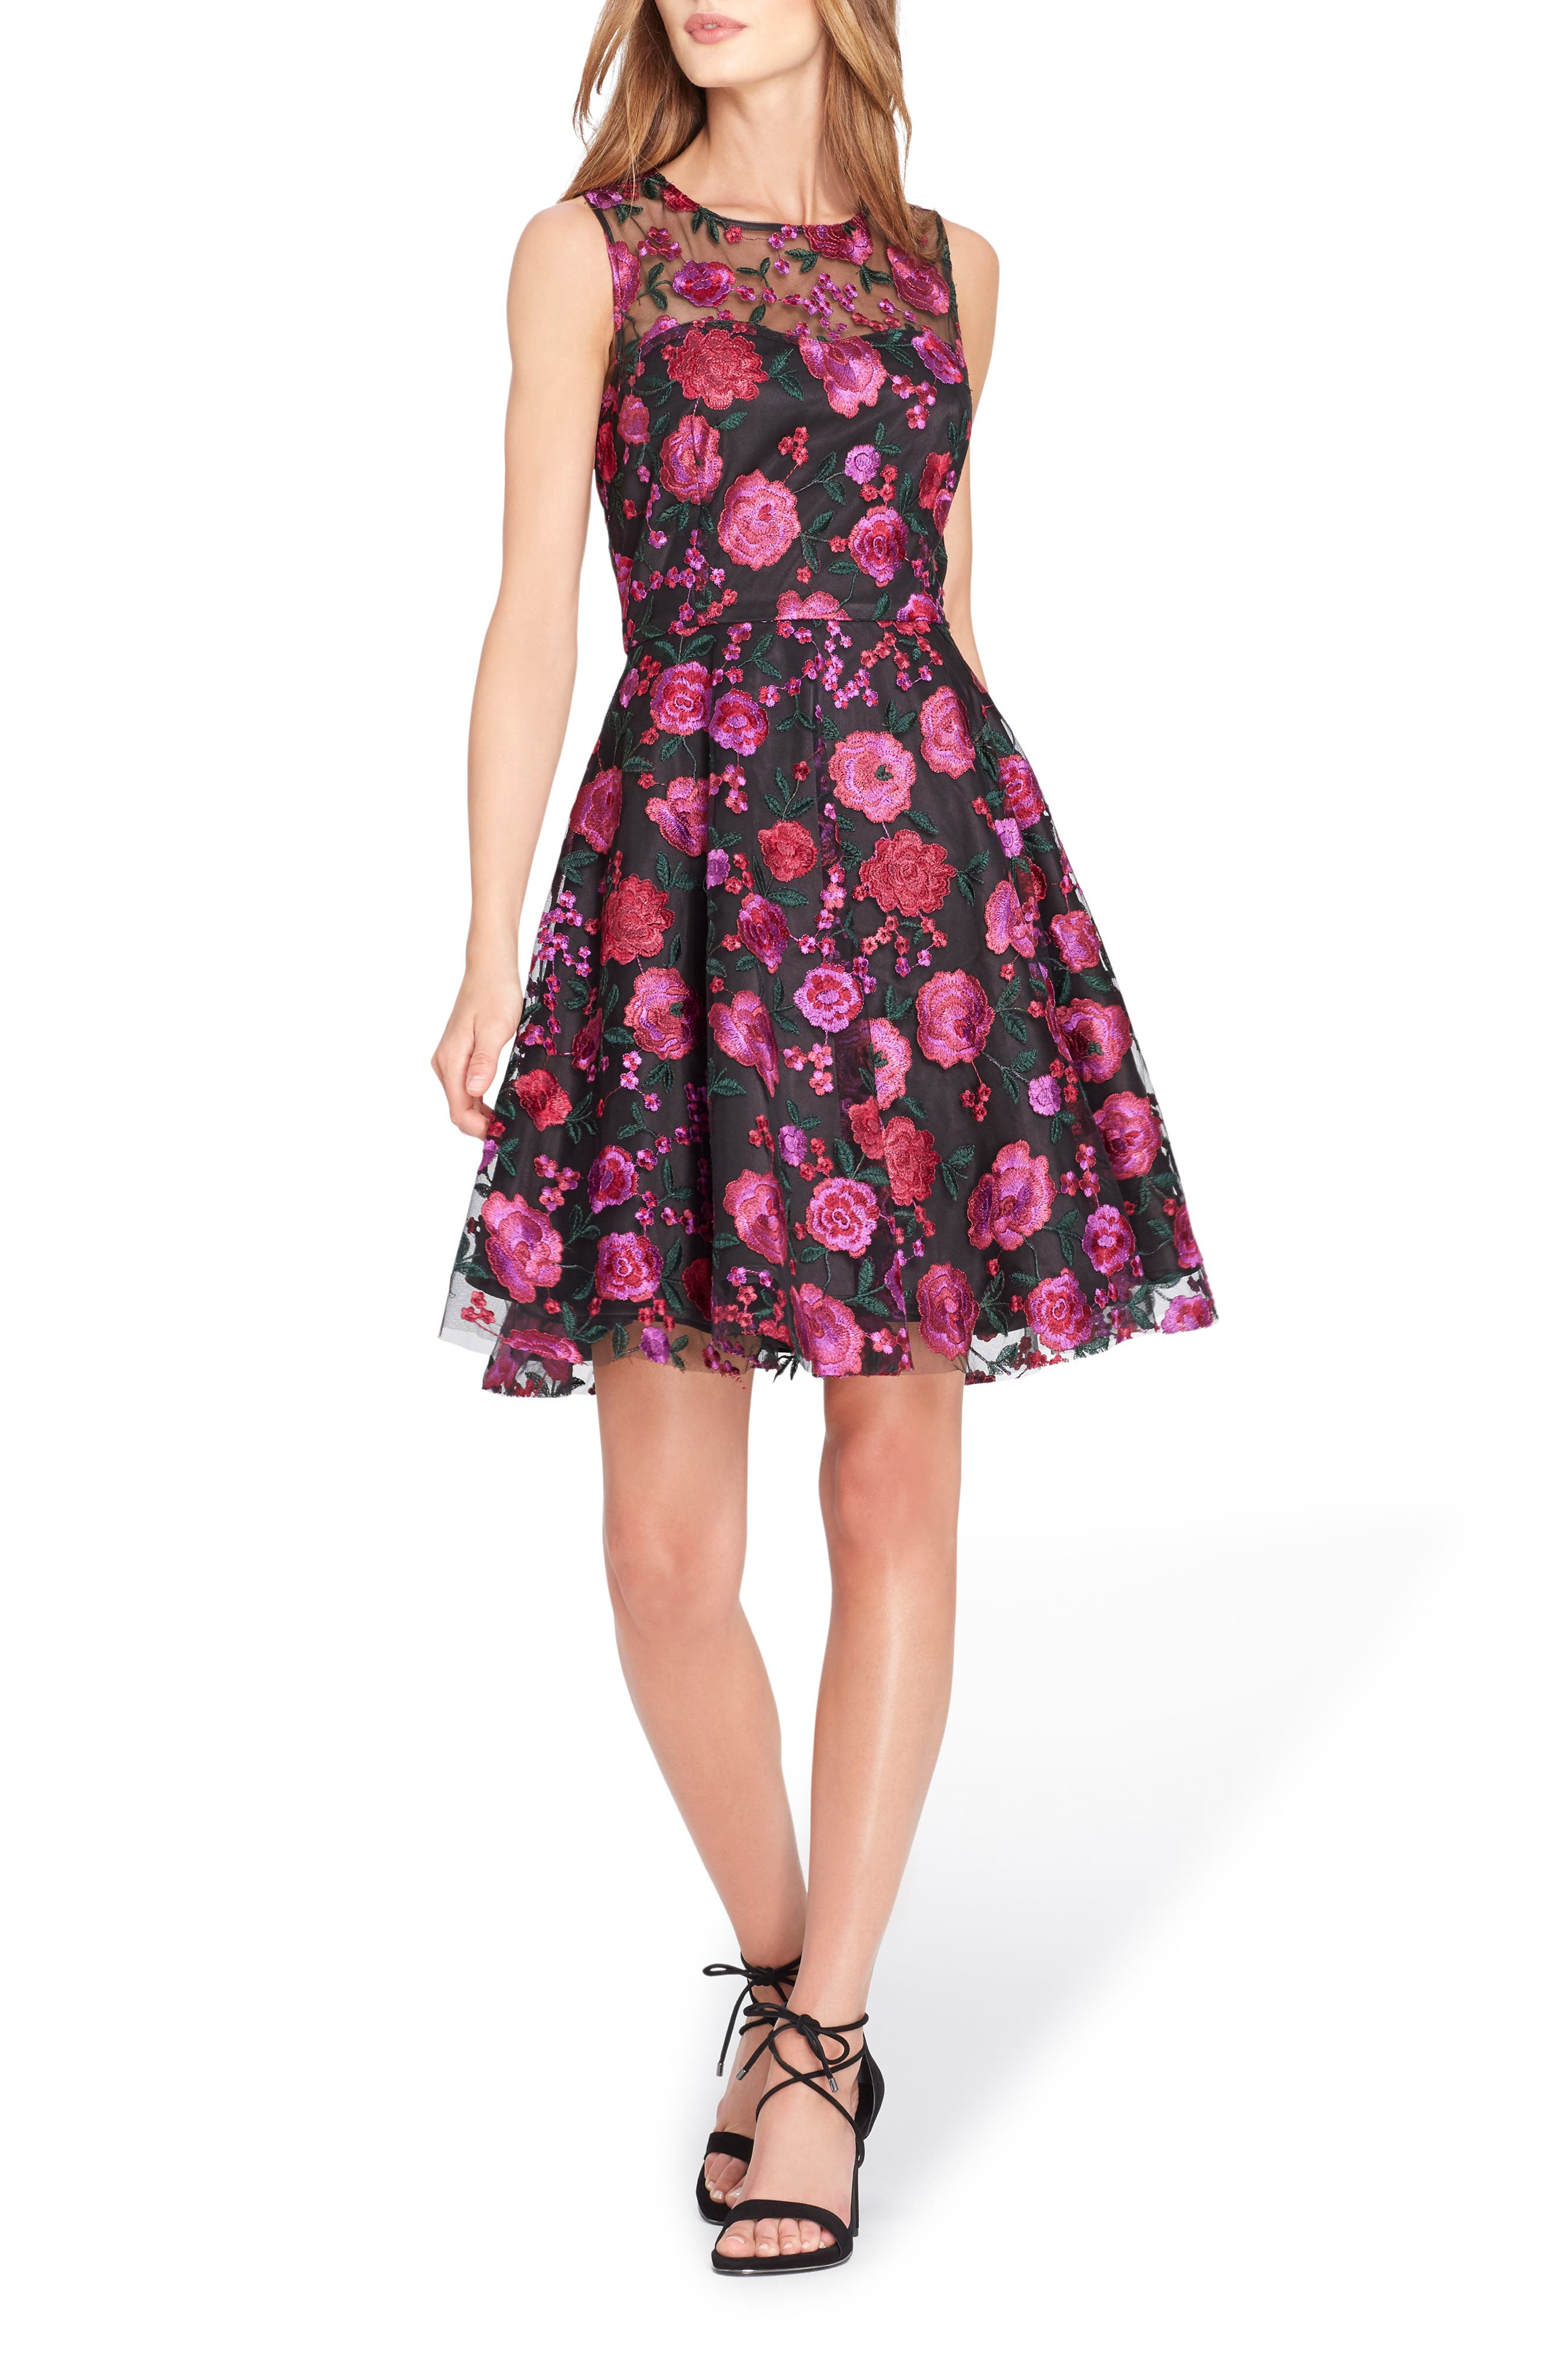 Embroidered Fit & Flare Dress,                         Main,                         color, Black/ Magenta/ Green